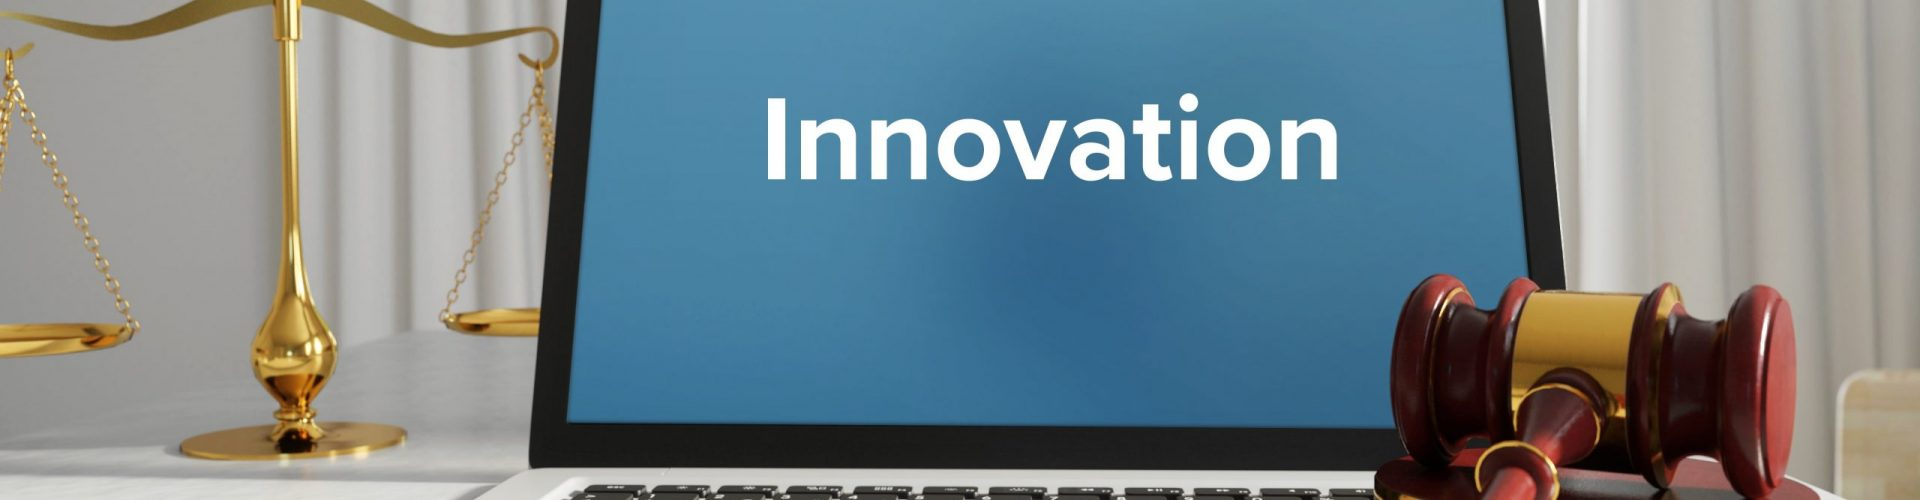 Innovation – Law, Judgment, Web. Laptop in the office with term on the screen. Hammer, Libra, Lawyer.